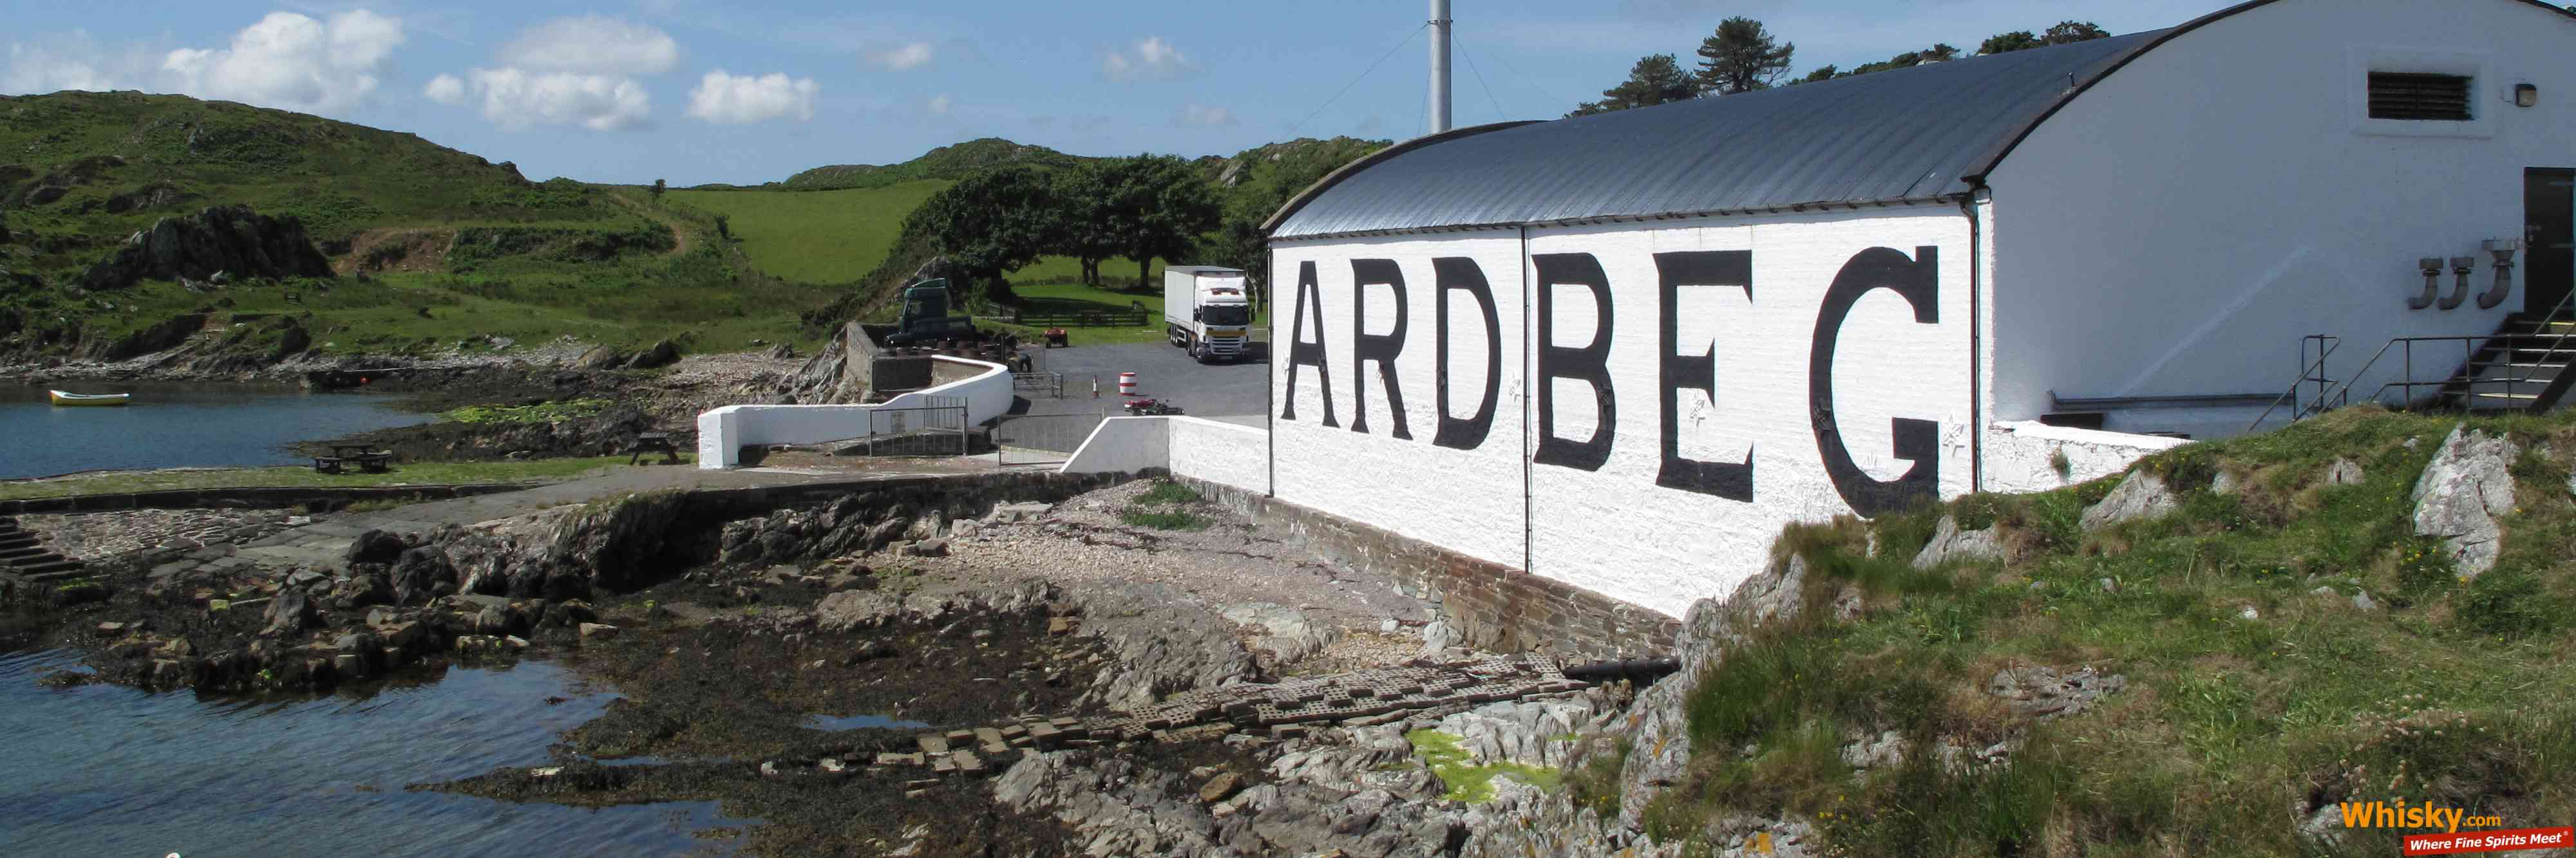 The Ardbeg distillery from the side